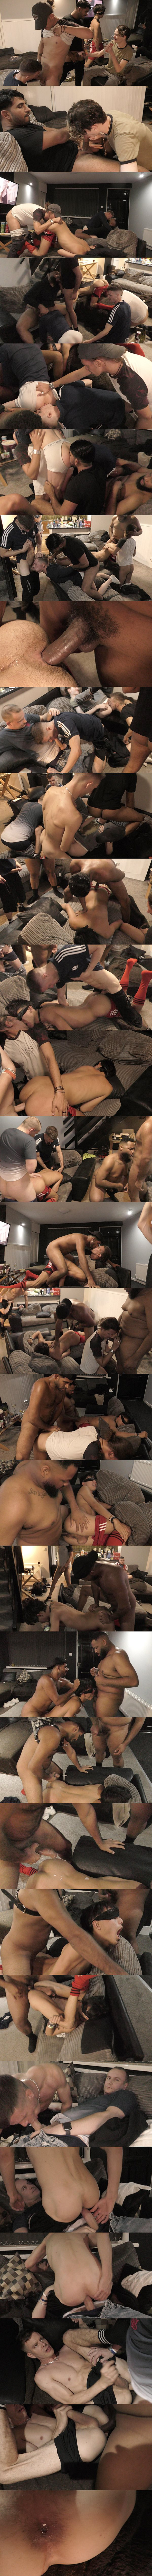 Hung Young Brit and his fuck buddies have a 12 man bareback orgy until three bottoms get creampied in Free Fuck and Cum Taken at Hungyoungbrit 01